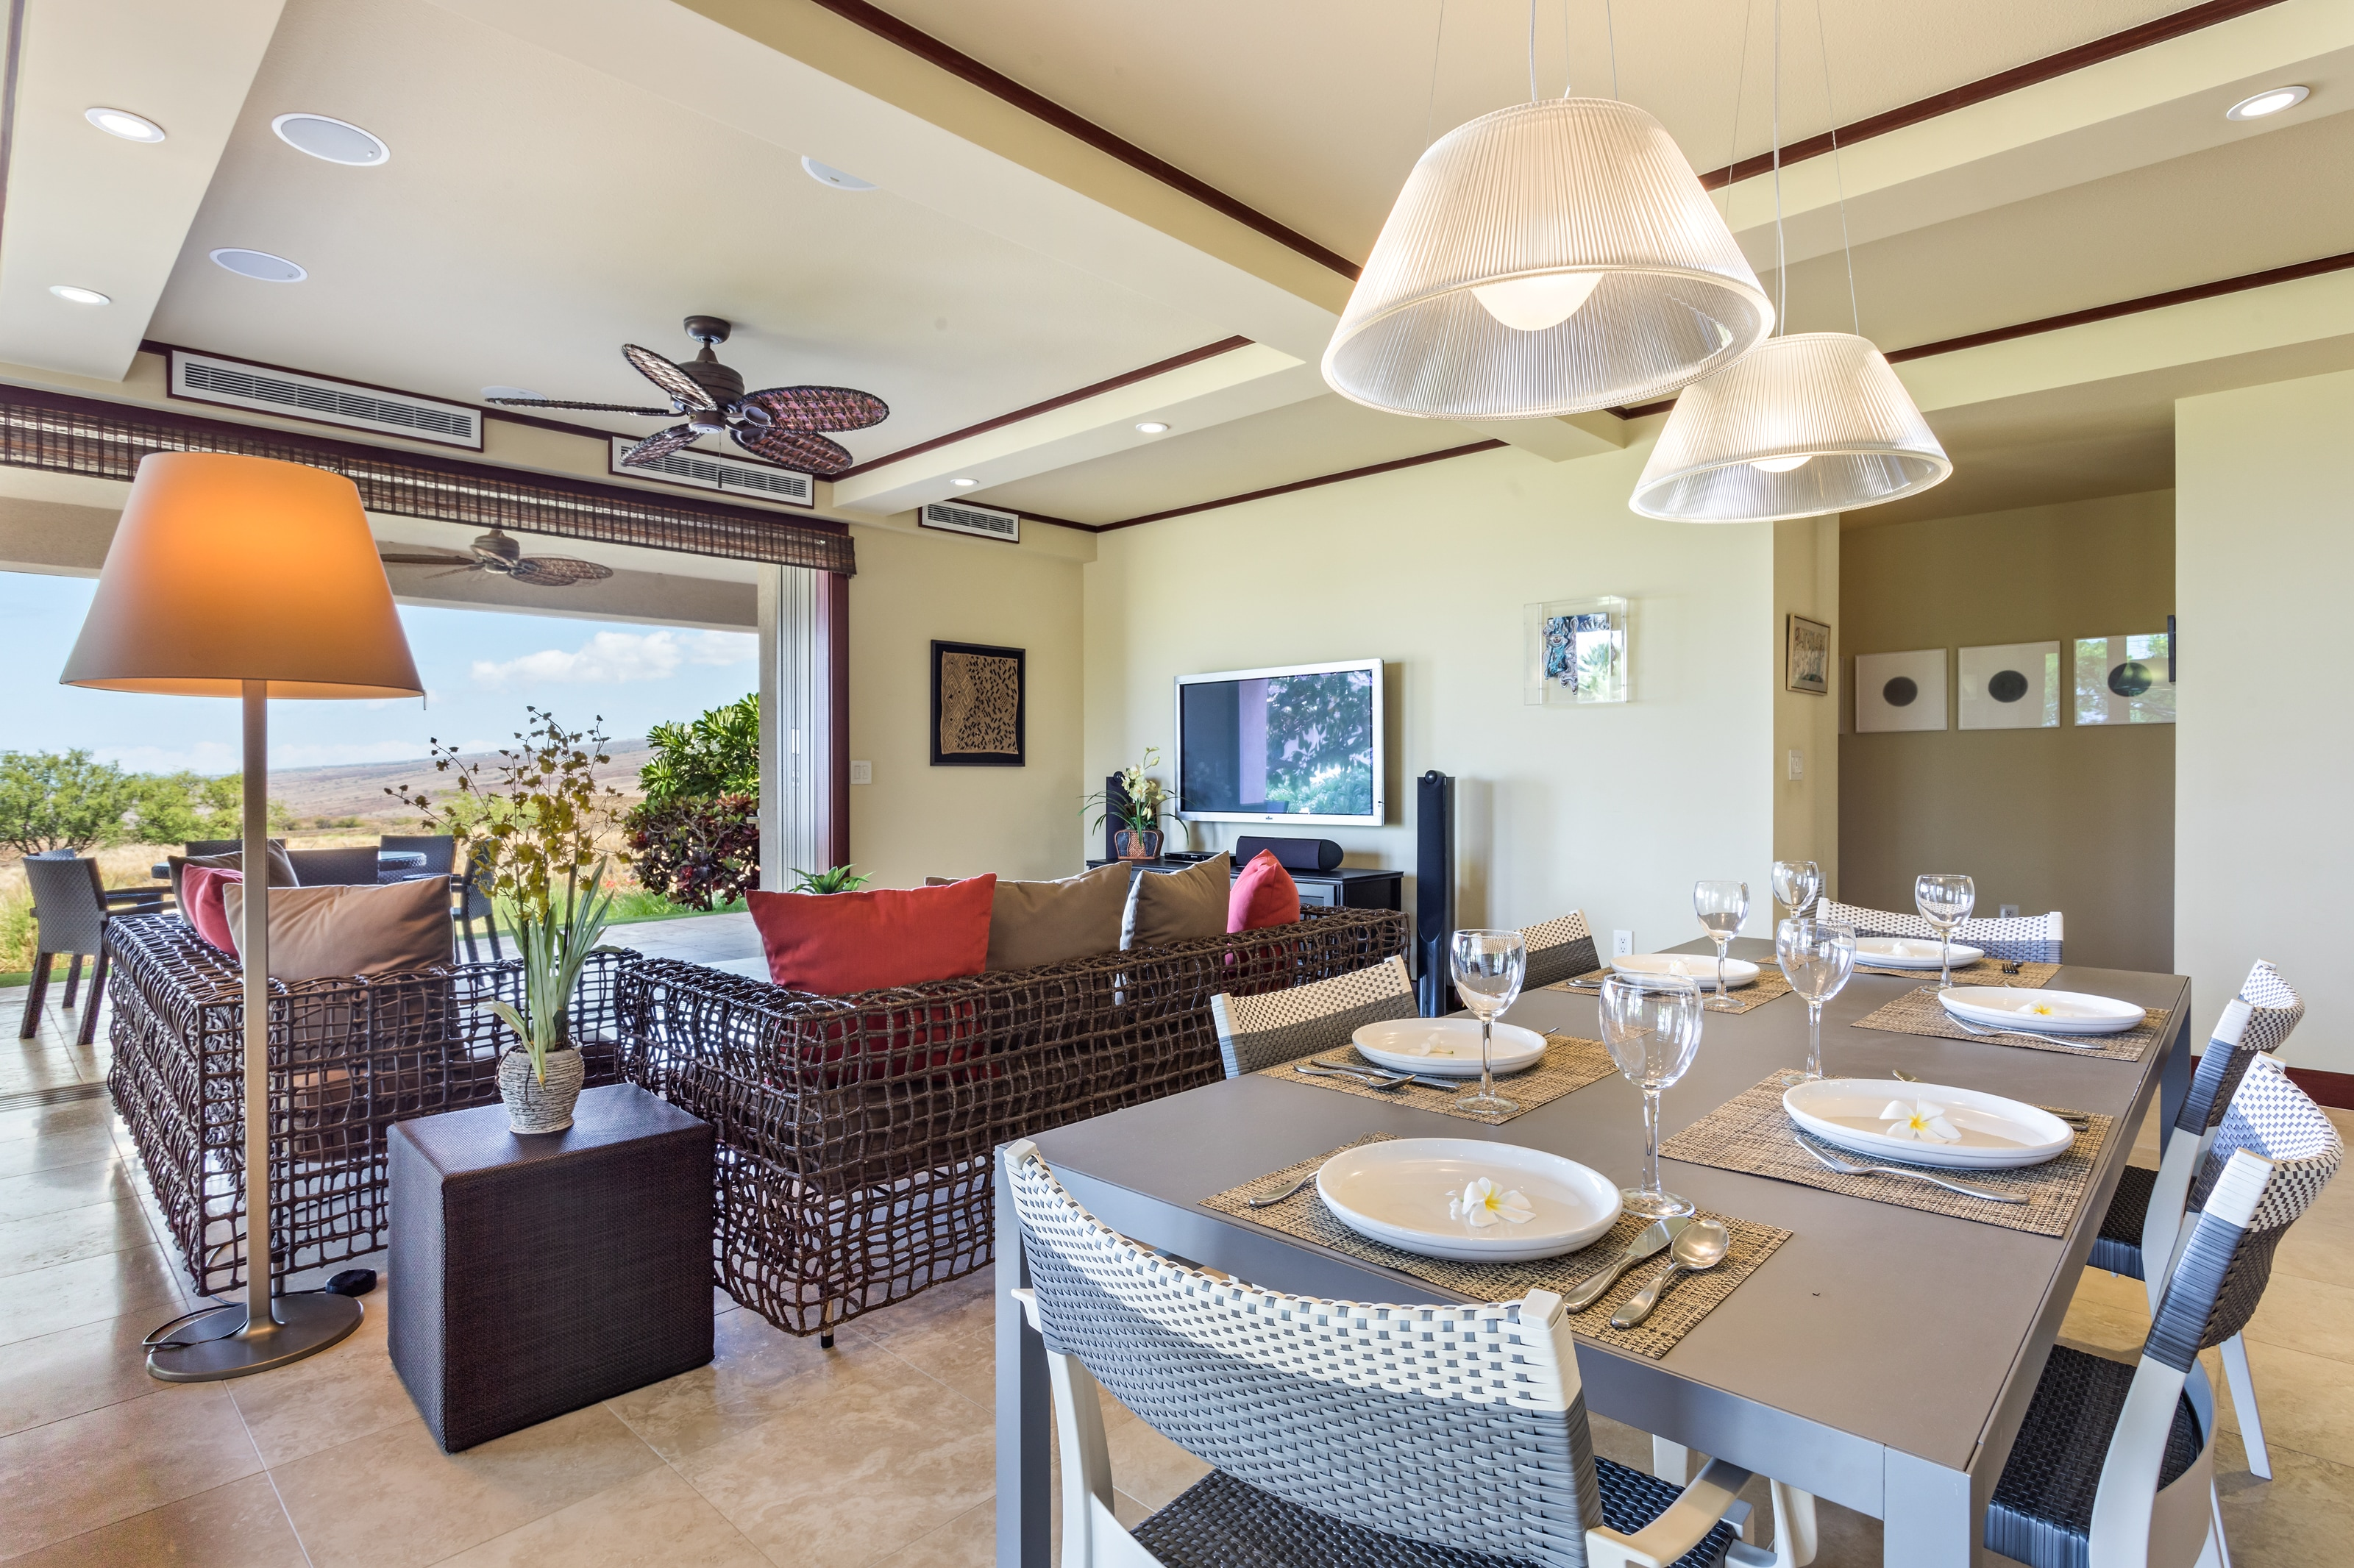 Property Image 2 - Idyllic Indoor/Outdoor Living with Lanai and Chef's Kitchen